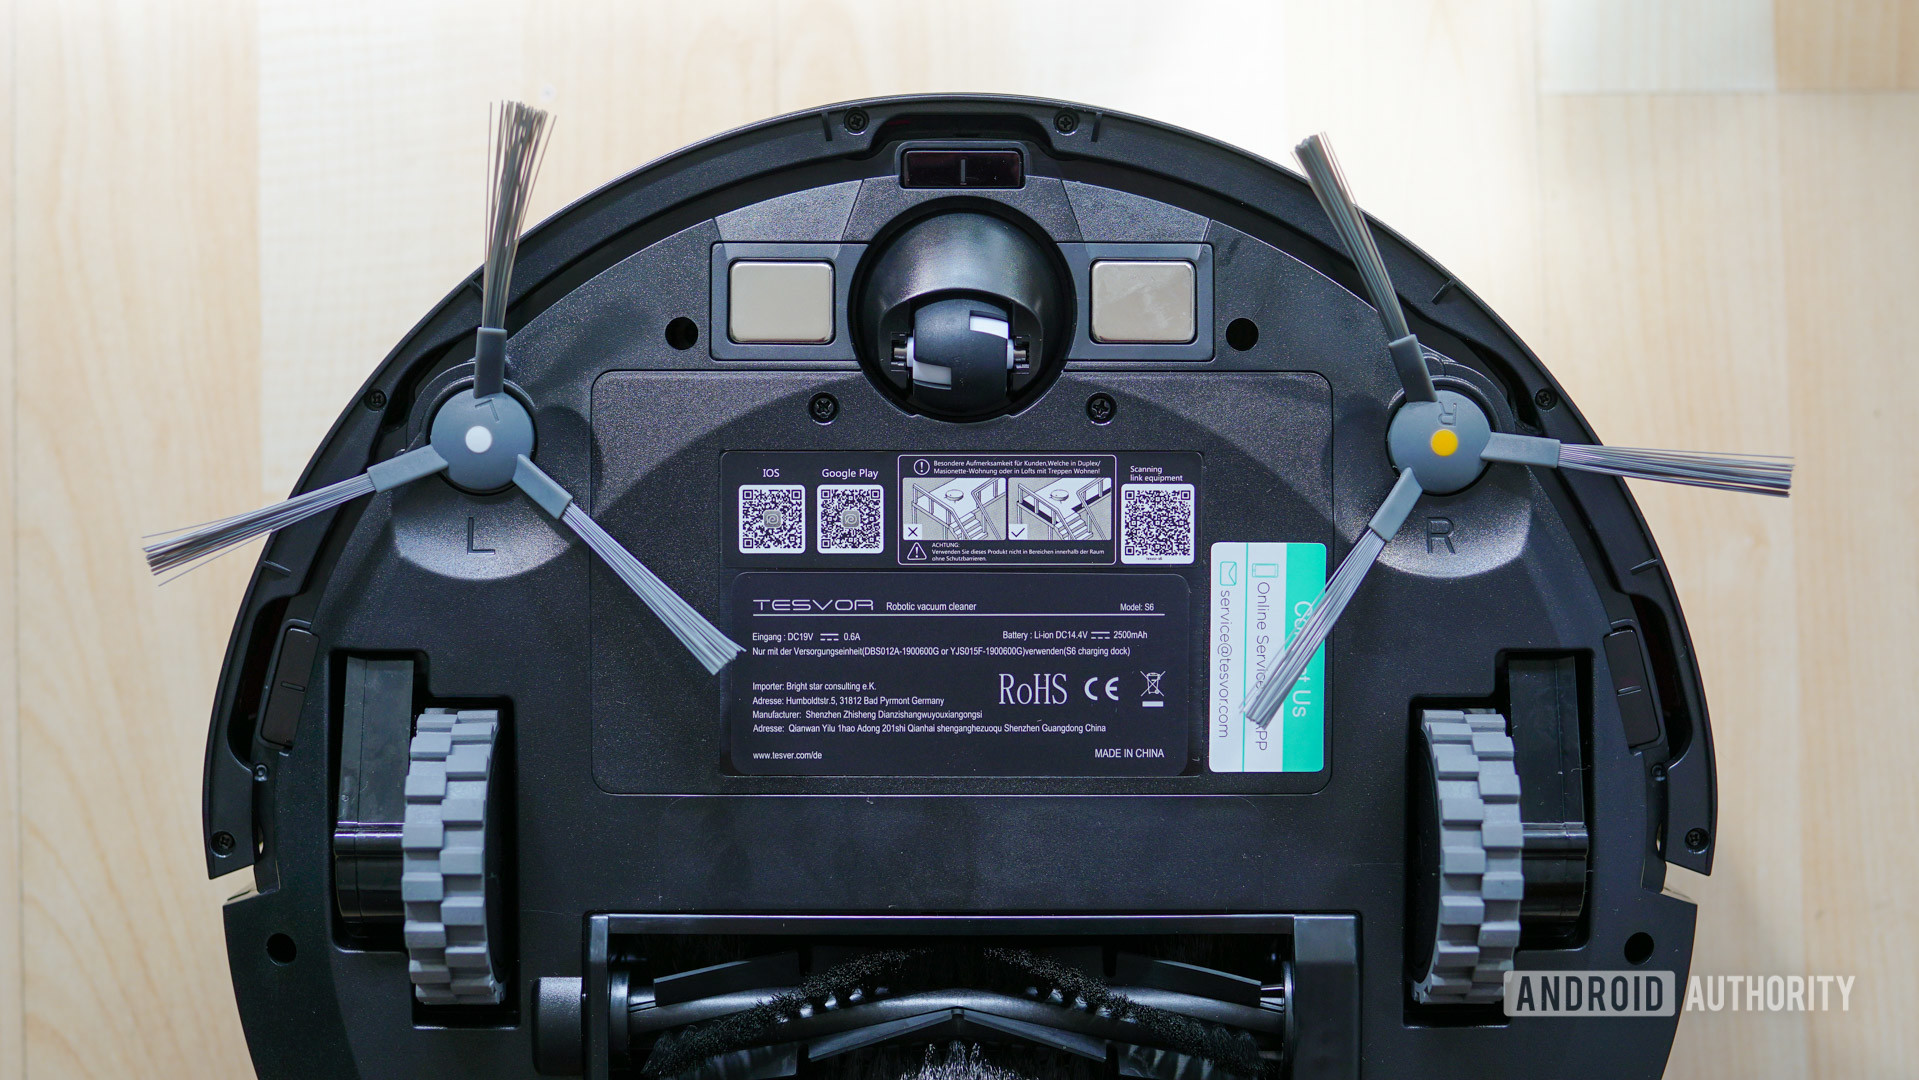 Tesvor S6 robot vacuum bottom view closeup wheels and brushes